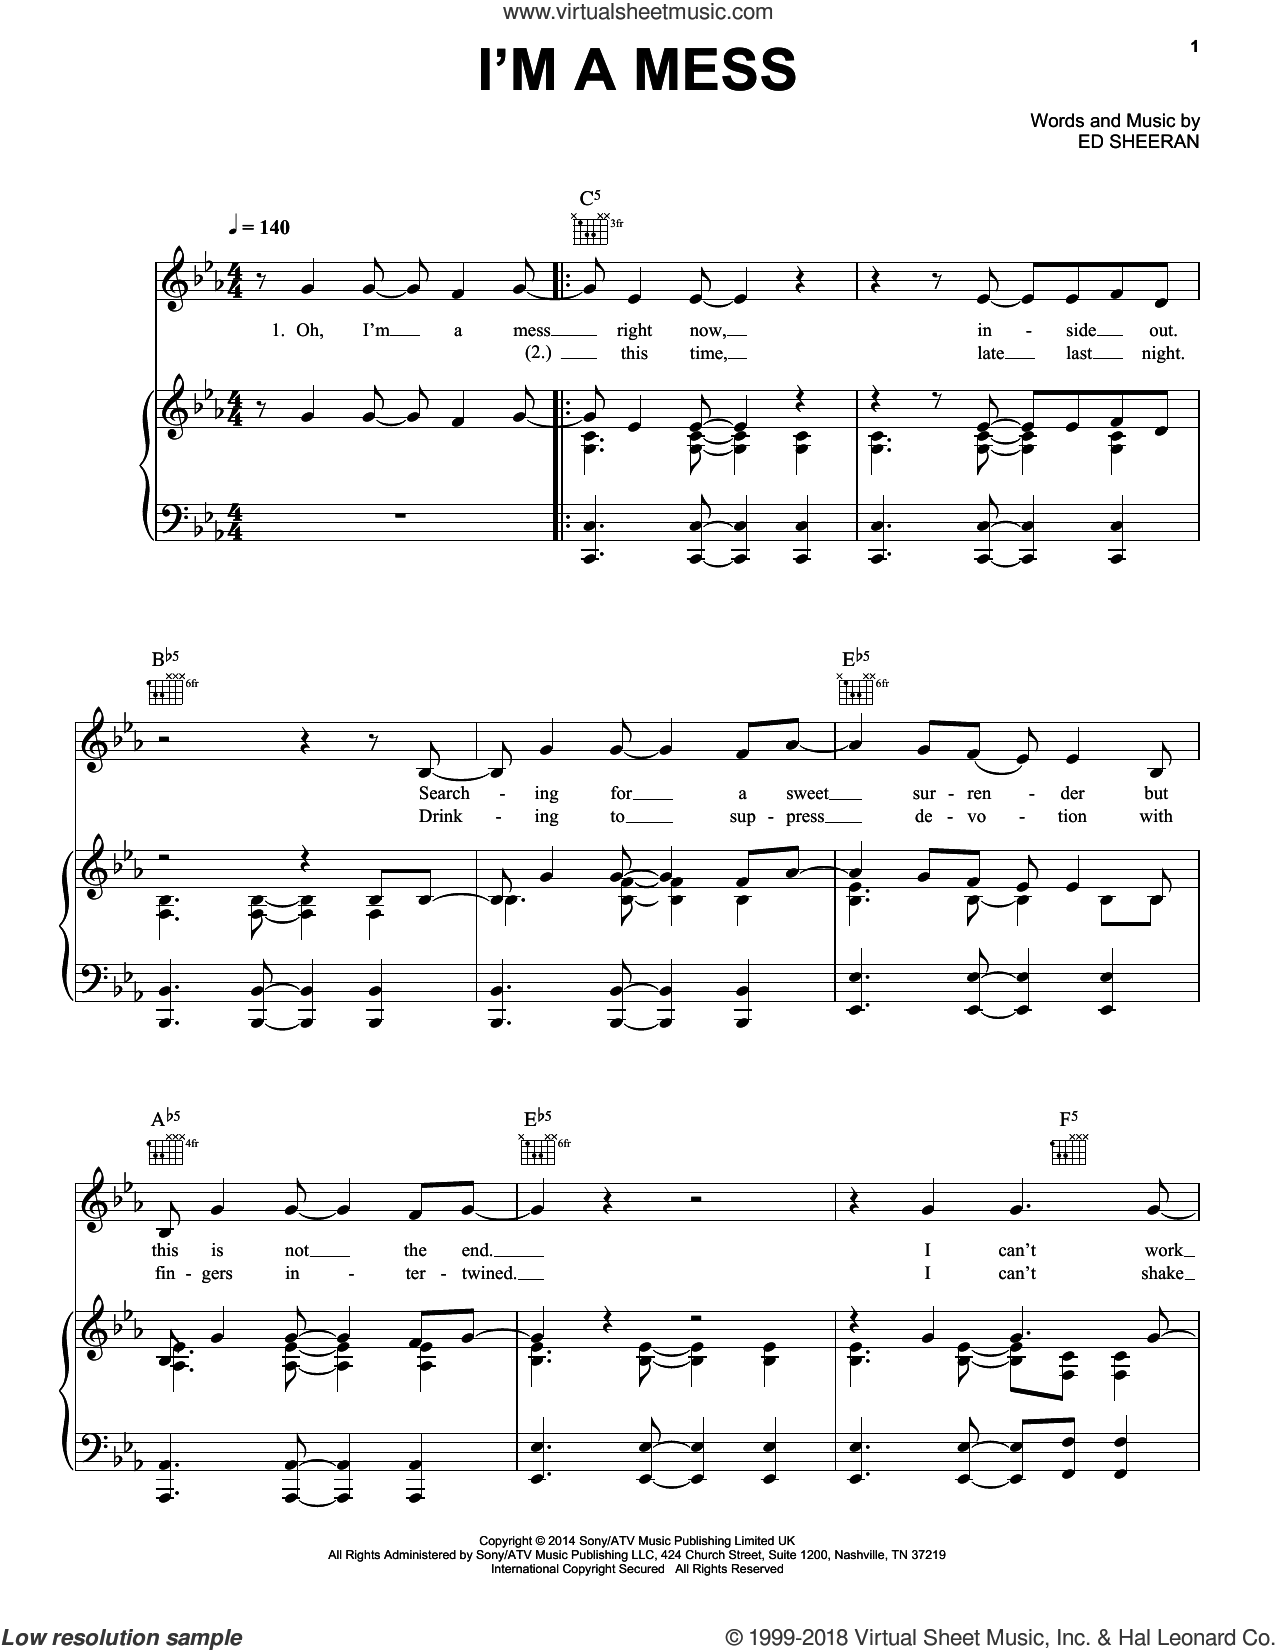 I'm A Mess sheet music for voice, piano or guitar by Ed Sheeran, intermediate skill level